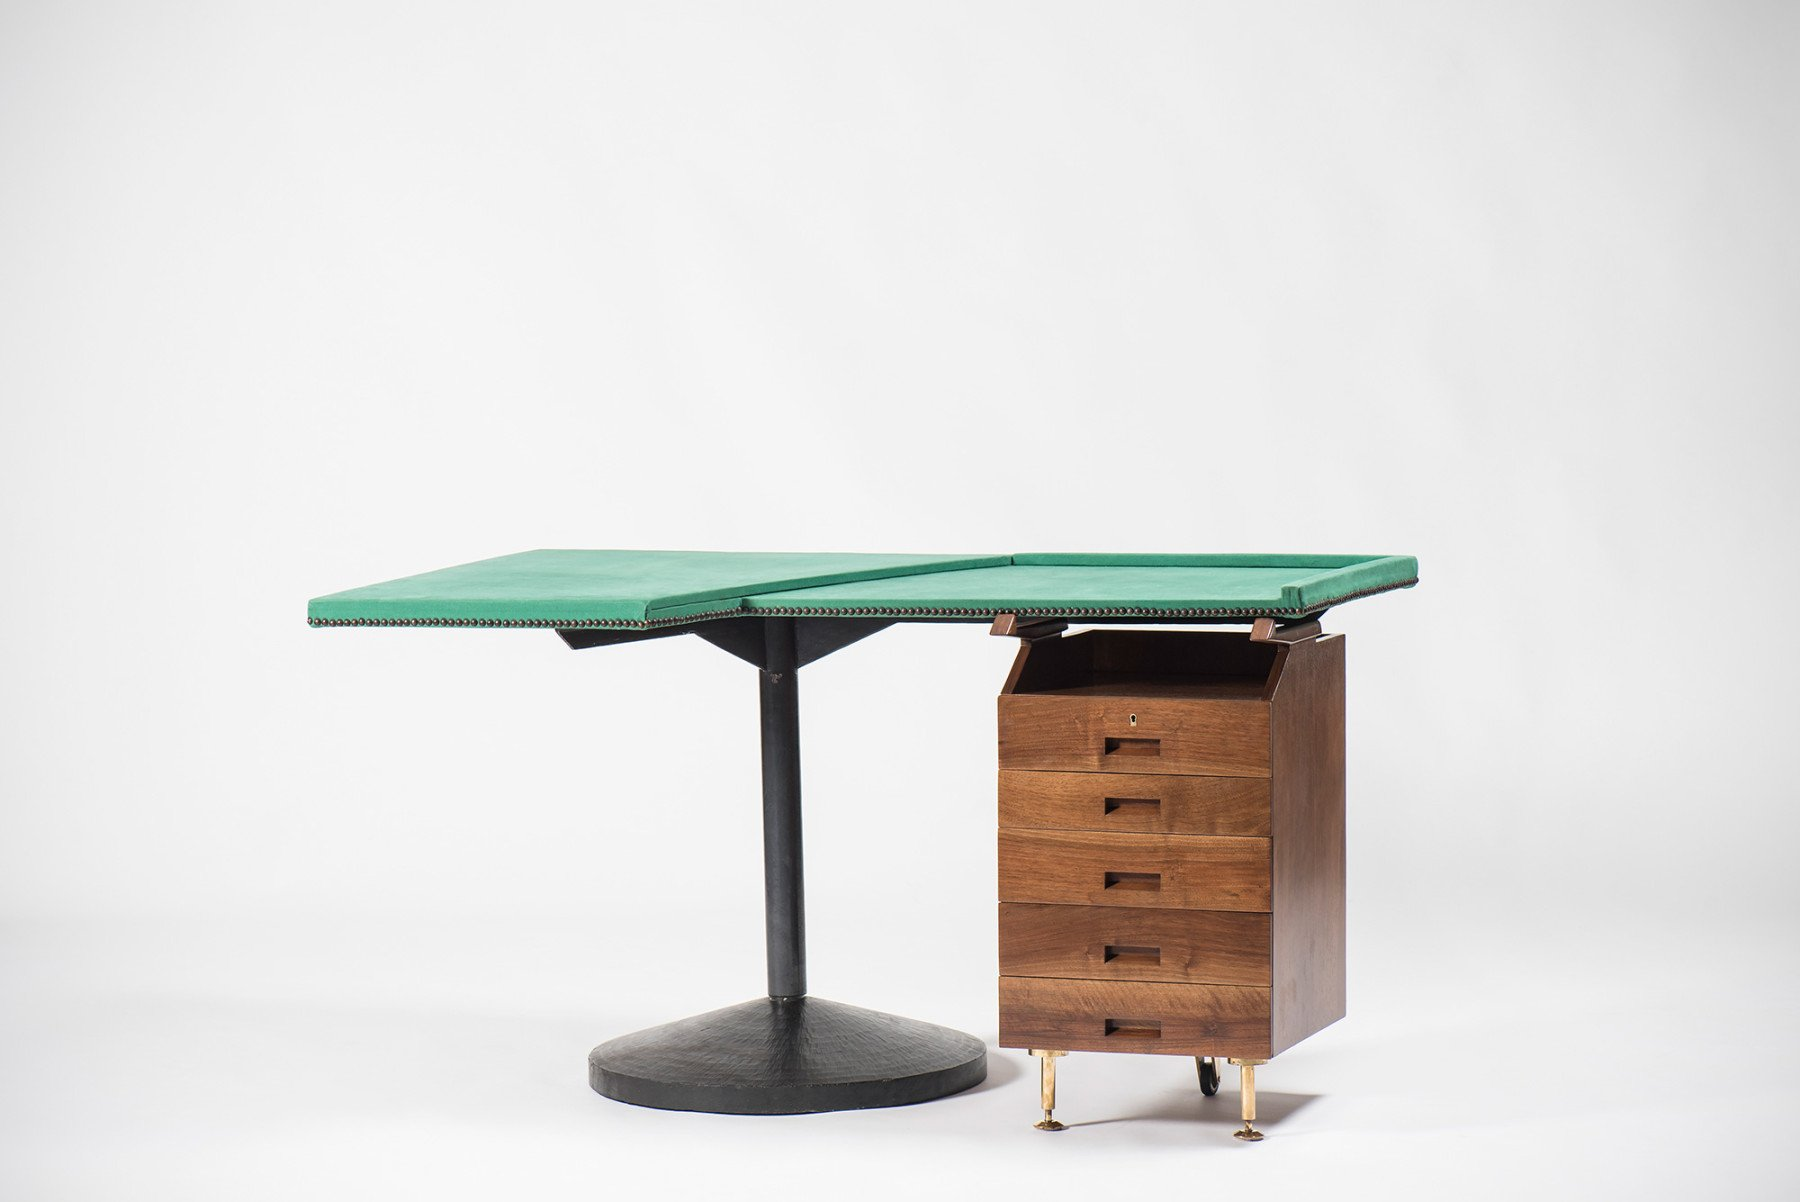 Franco Albini |                              Stadera desk for Casa Caterina Marcenaro